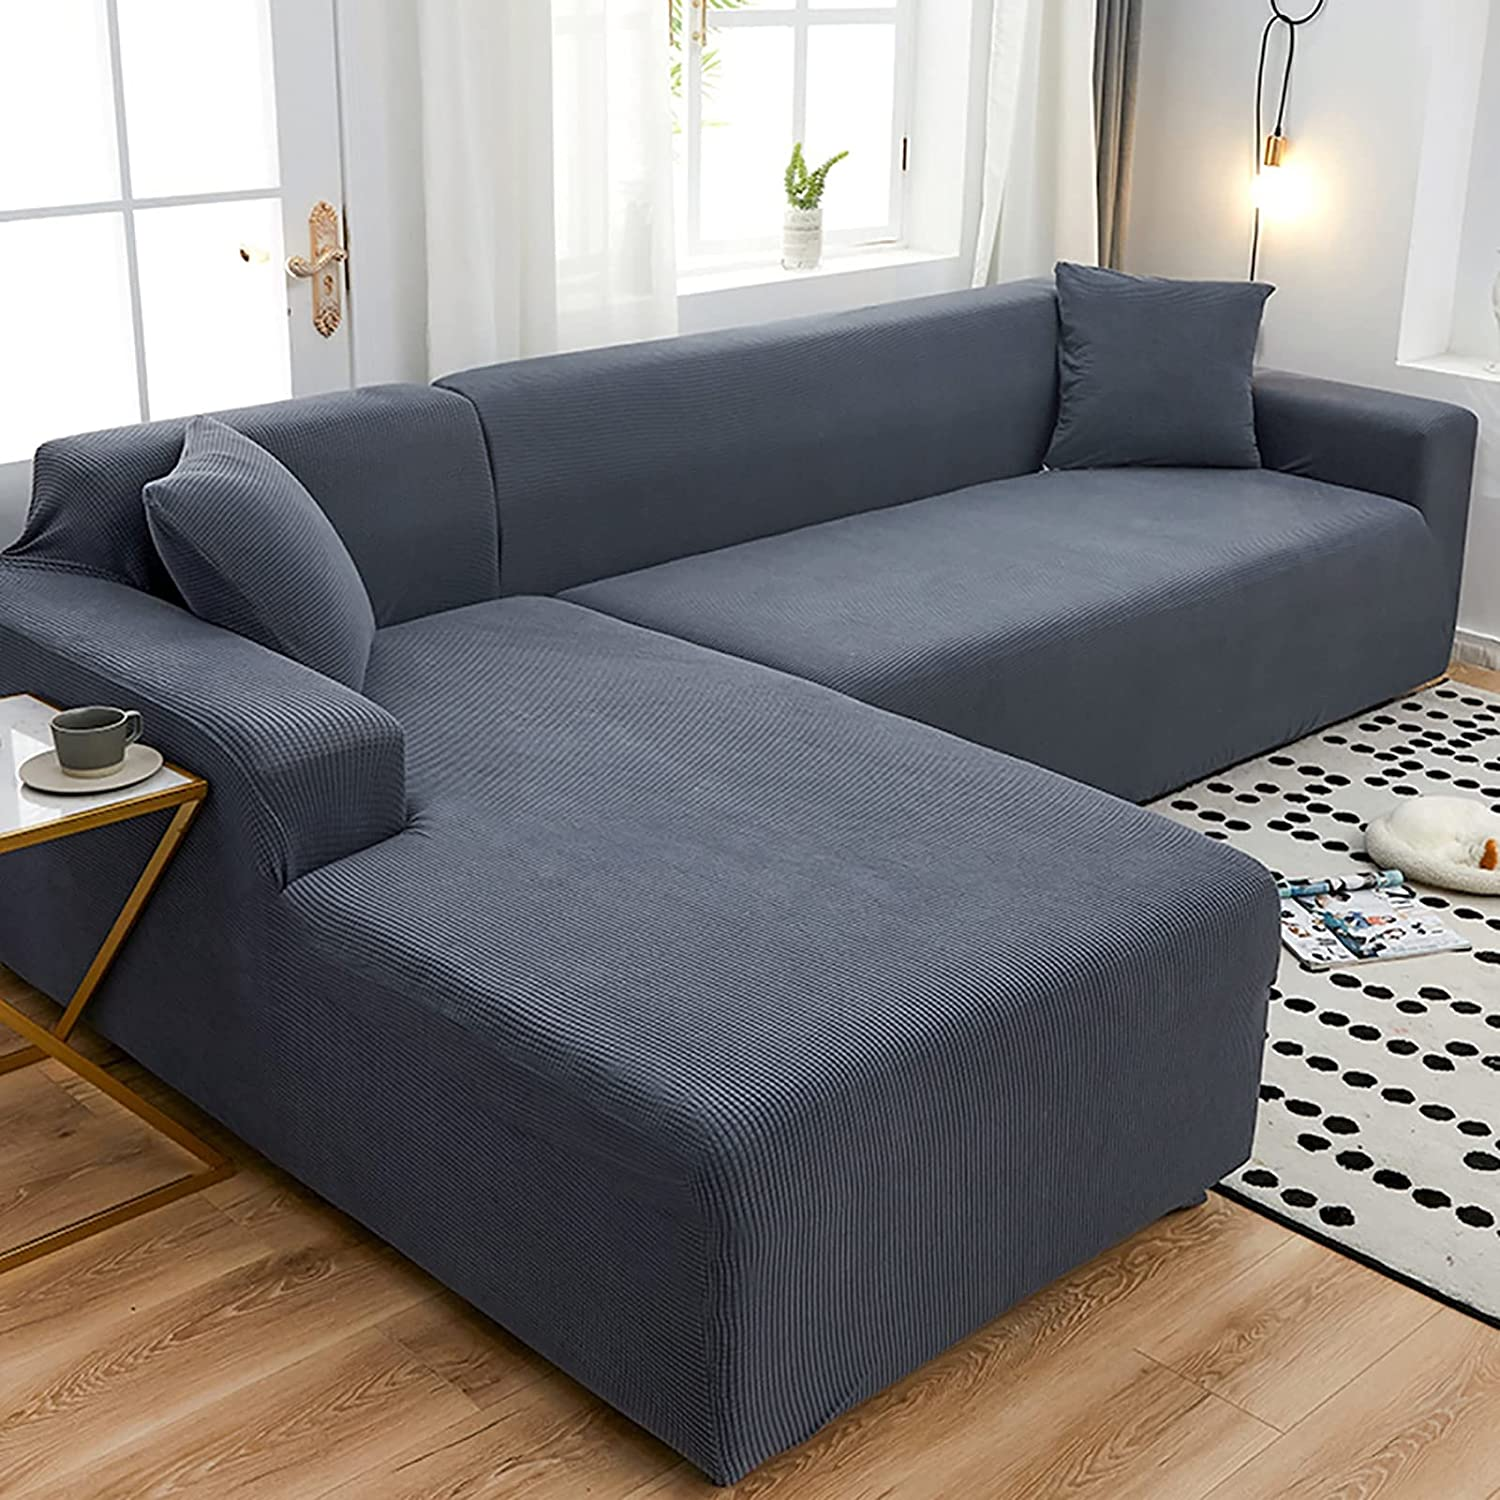 Wgreat Max Under blast sales 43% OFF Stretch Sectional Couch Covers L Sofa Shaped Soft Slipcov